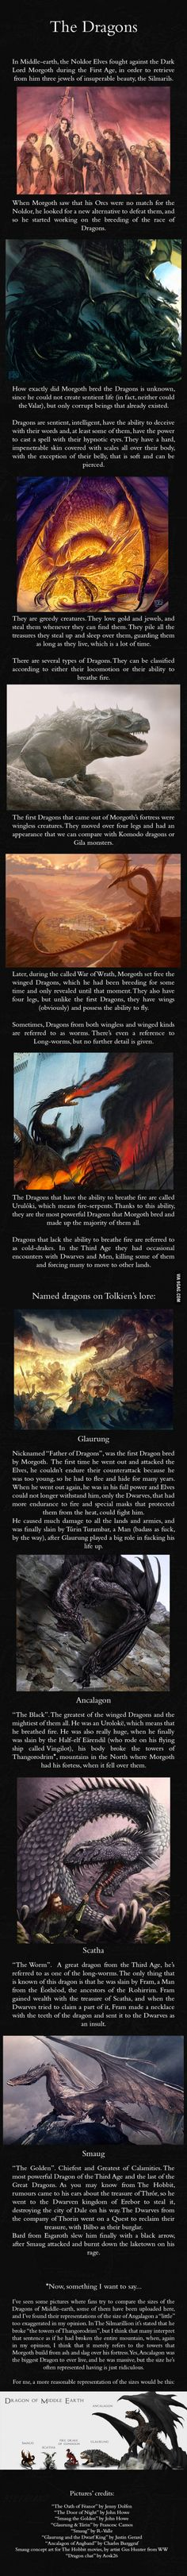 Dragons - J.R.R. Tolkien's Mythology